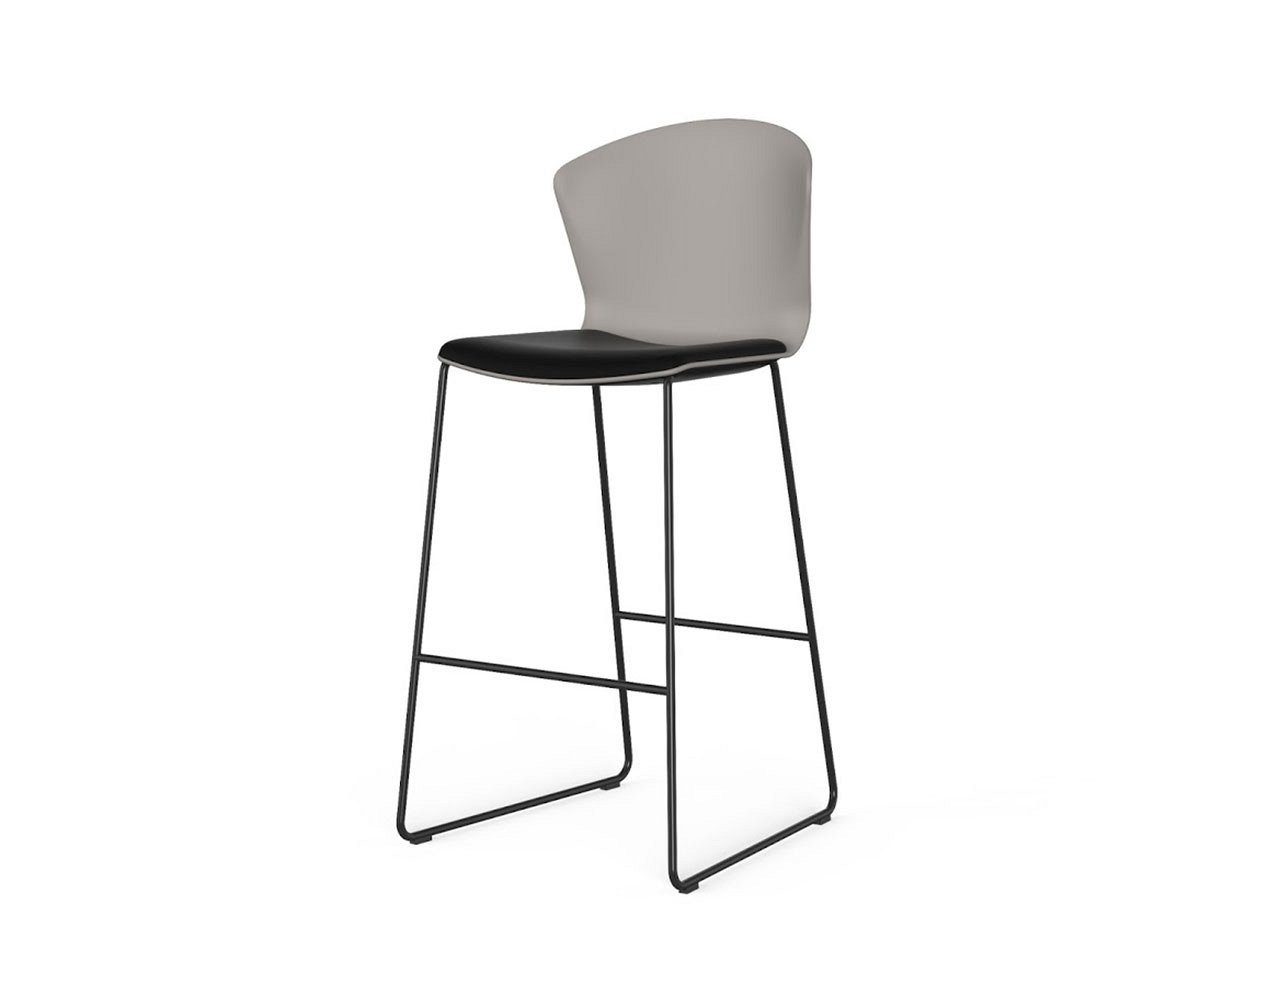 Whass Chair from Actiu